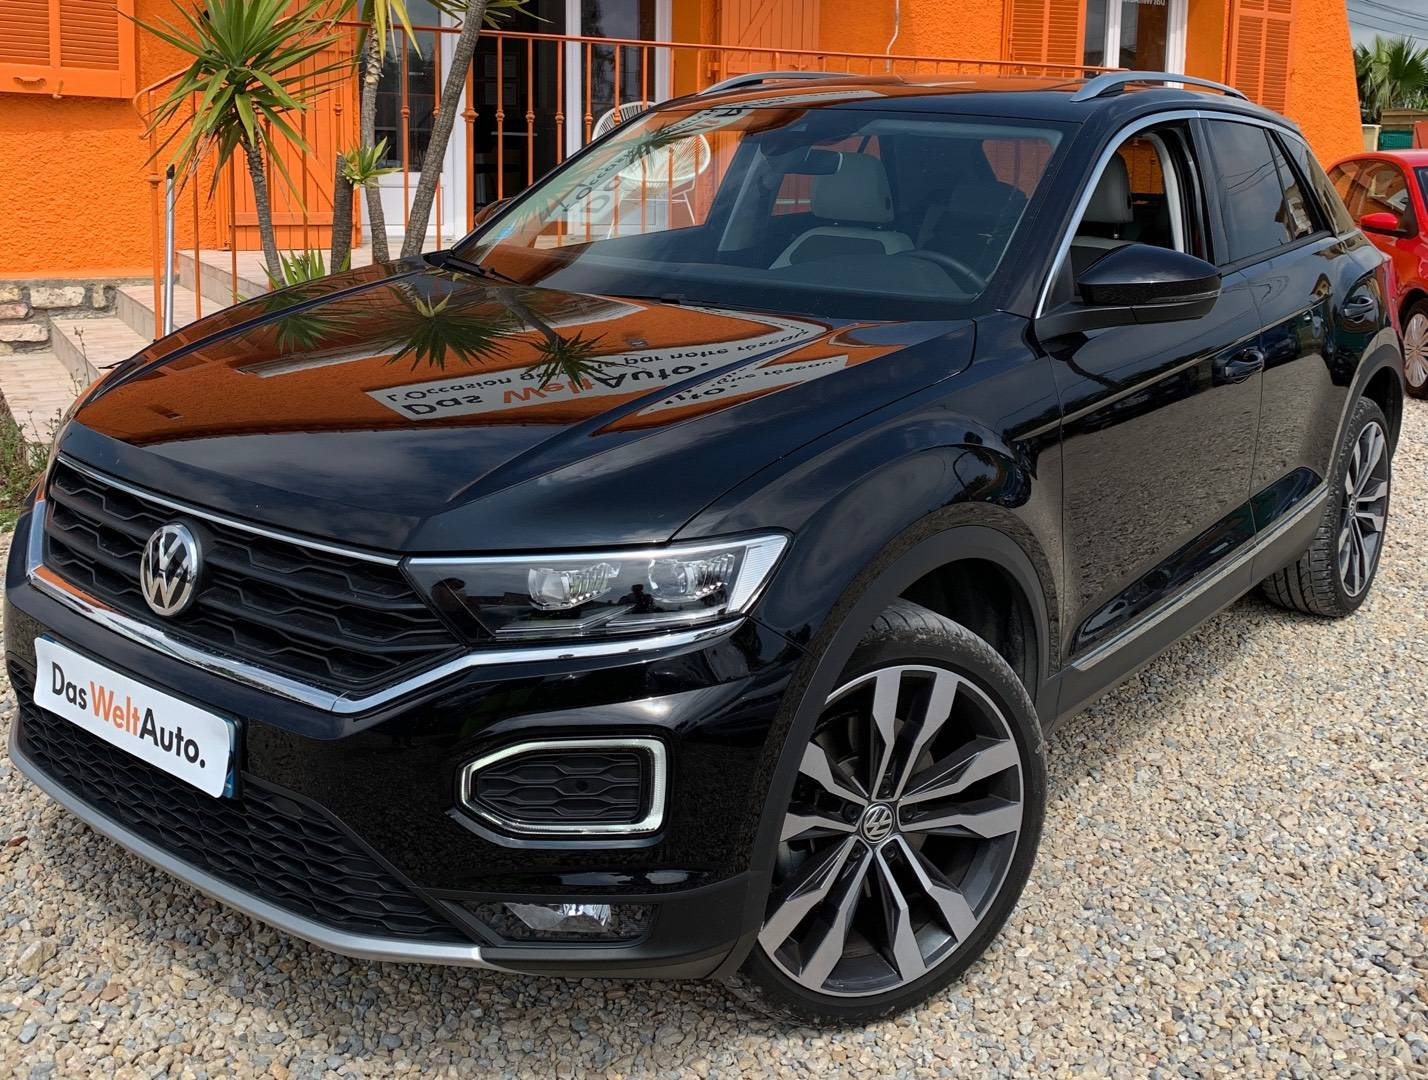 T-Roc 2.0 TDI 150 Start/Stop DSG7 4Motion